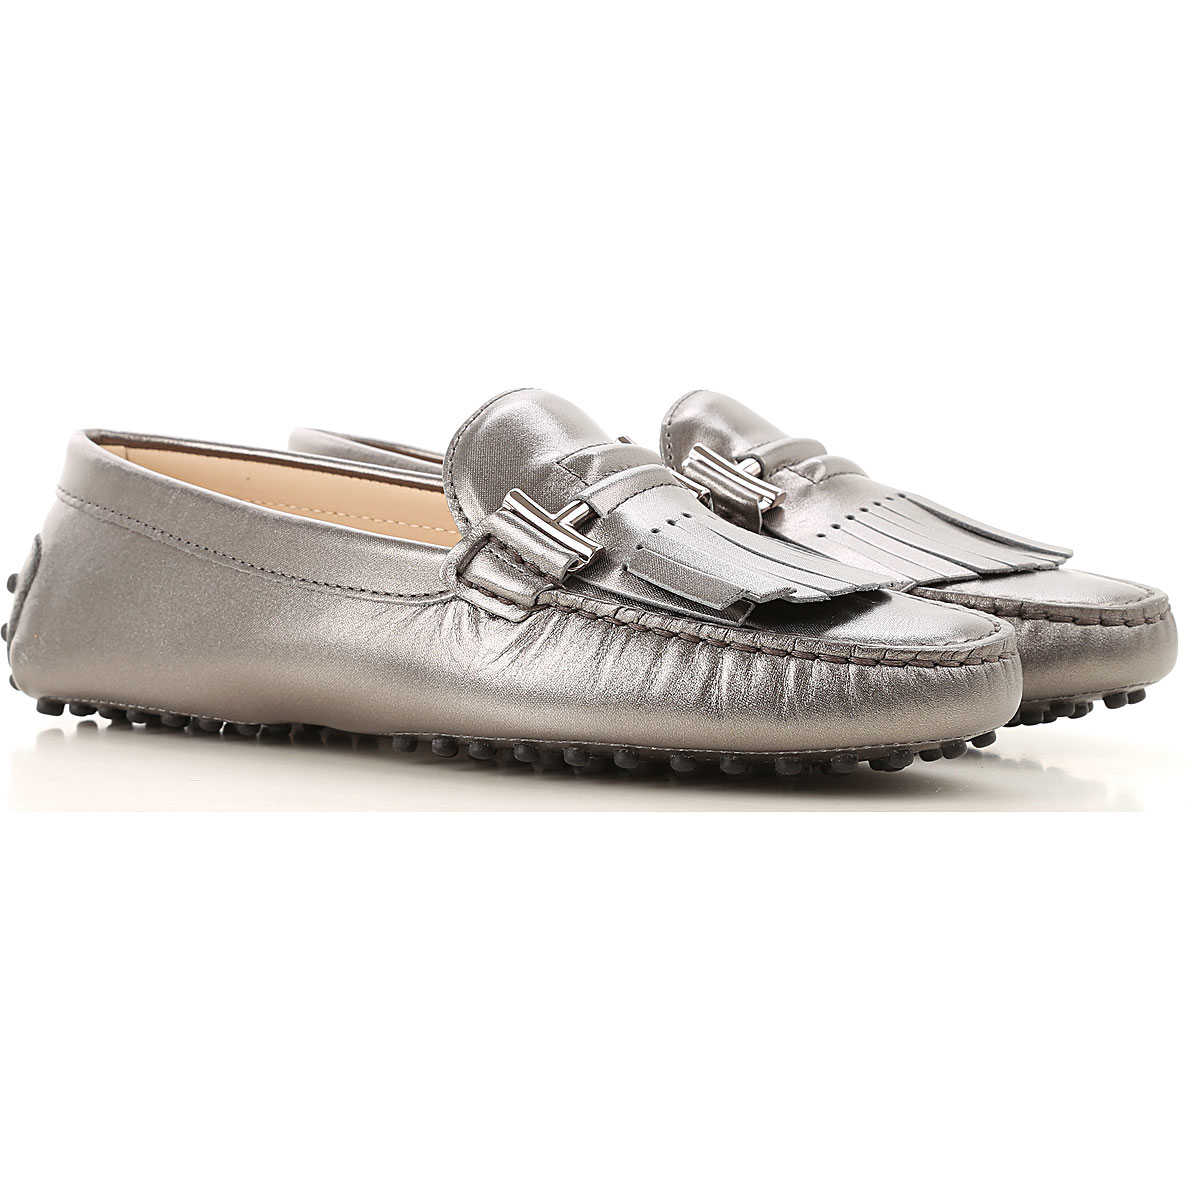 Tods Loafers for Women Mid Grey USA - GOOFASH